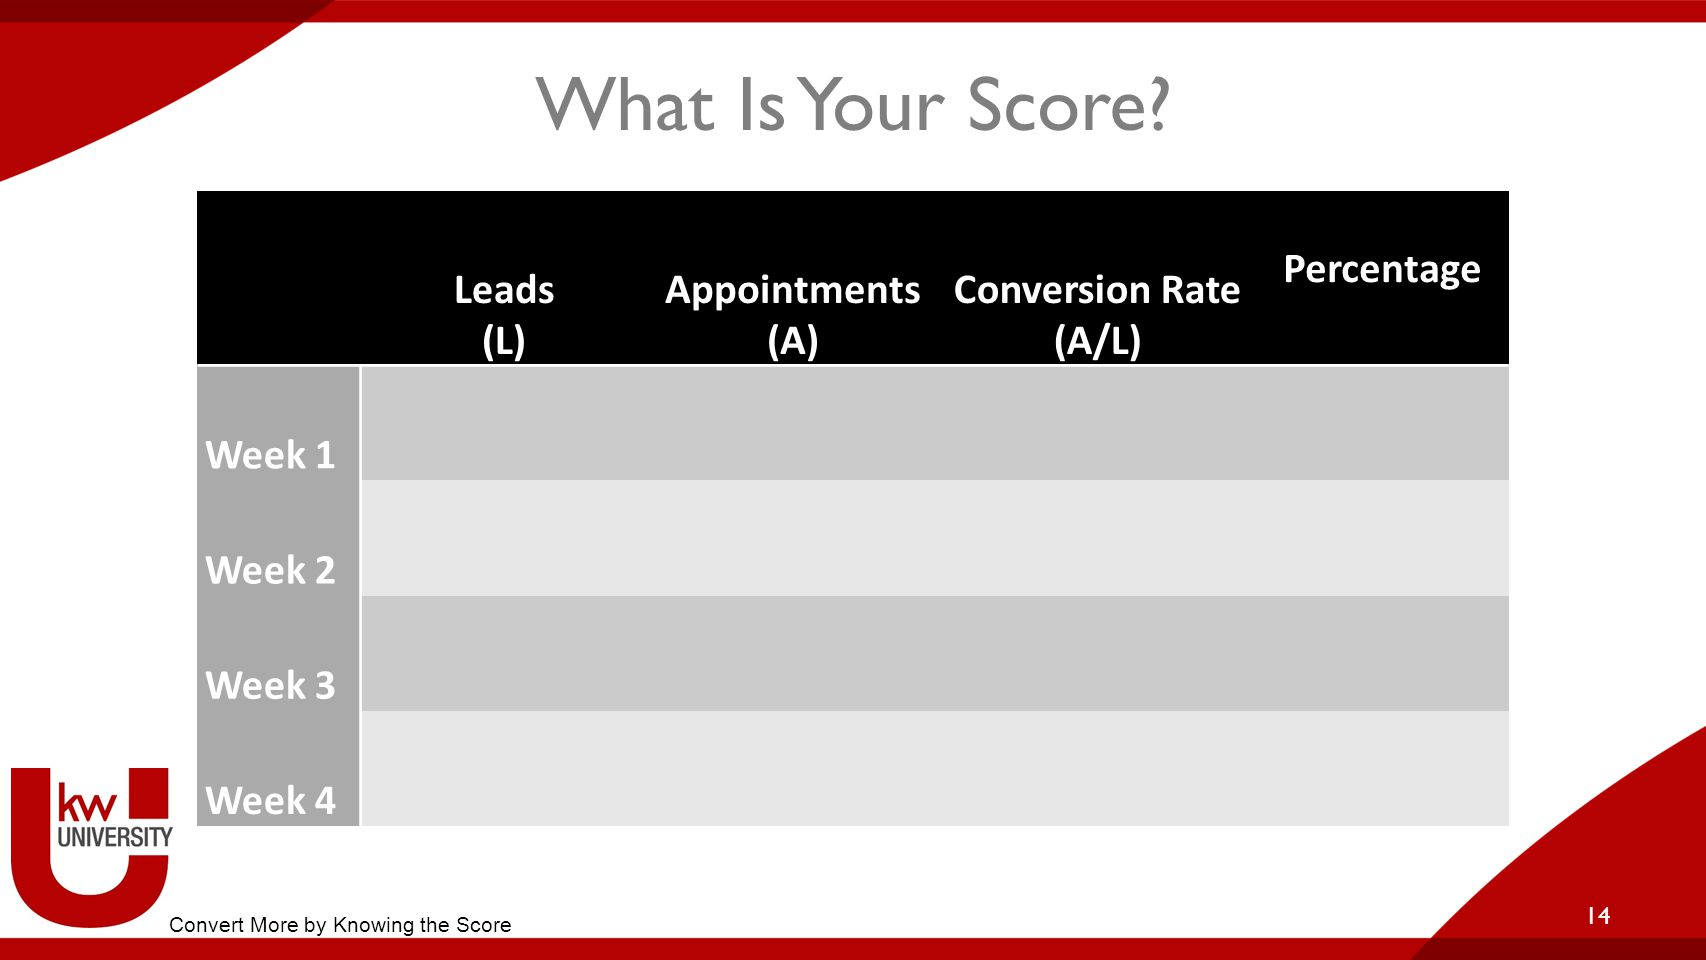 What Is Your Score Leads (L) Appointments (A) Conversion Rate (A/L)